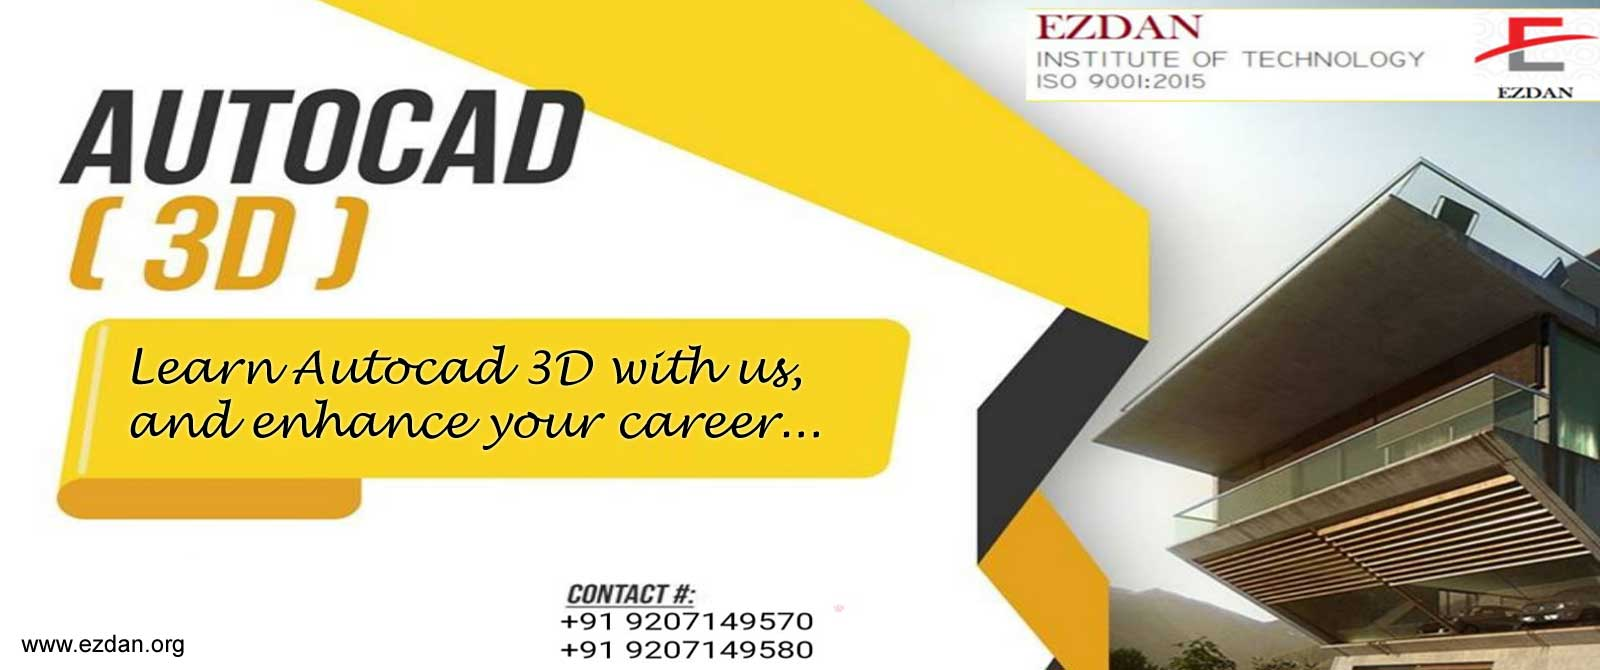 Learn Autocad ® 3D in Ezdan Institute and Enhance your Career...